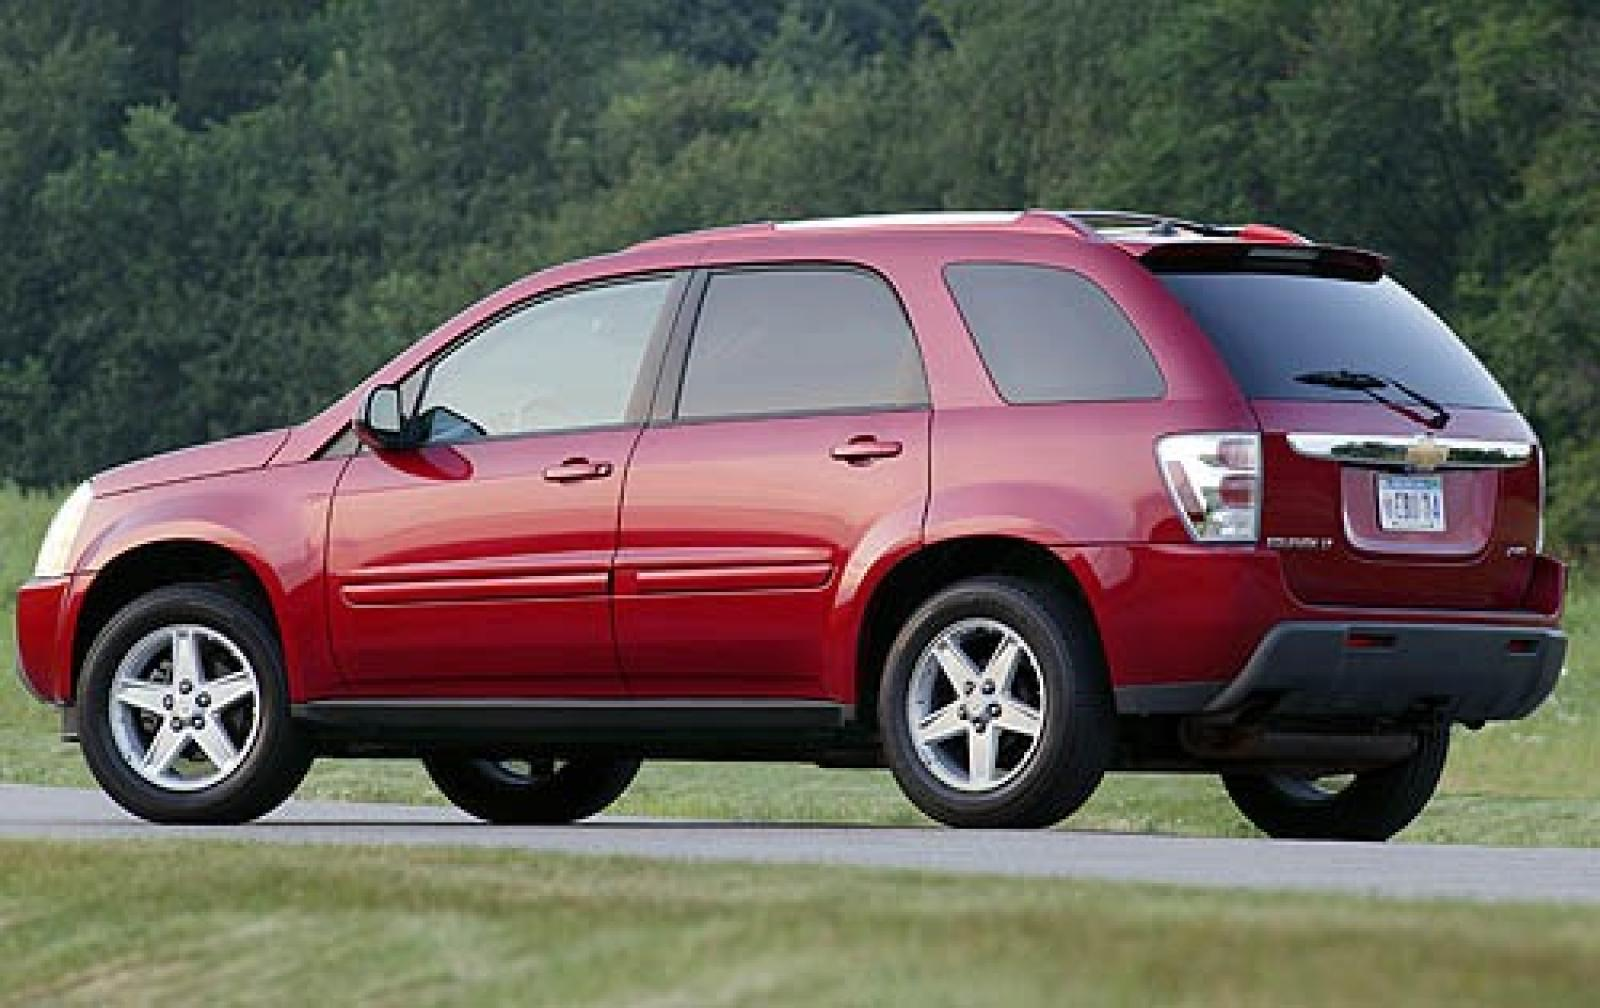 2007 chevrolet equinox - information and photos - zombiedrive